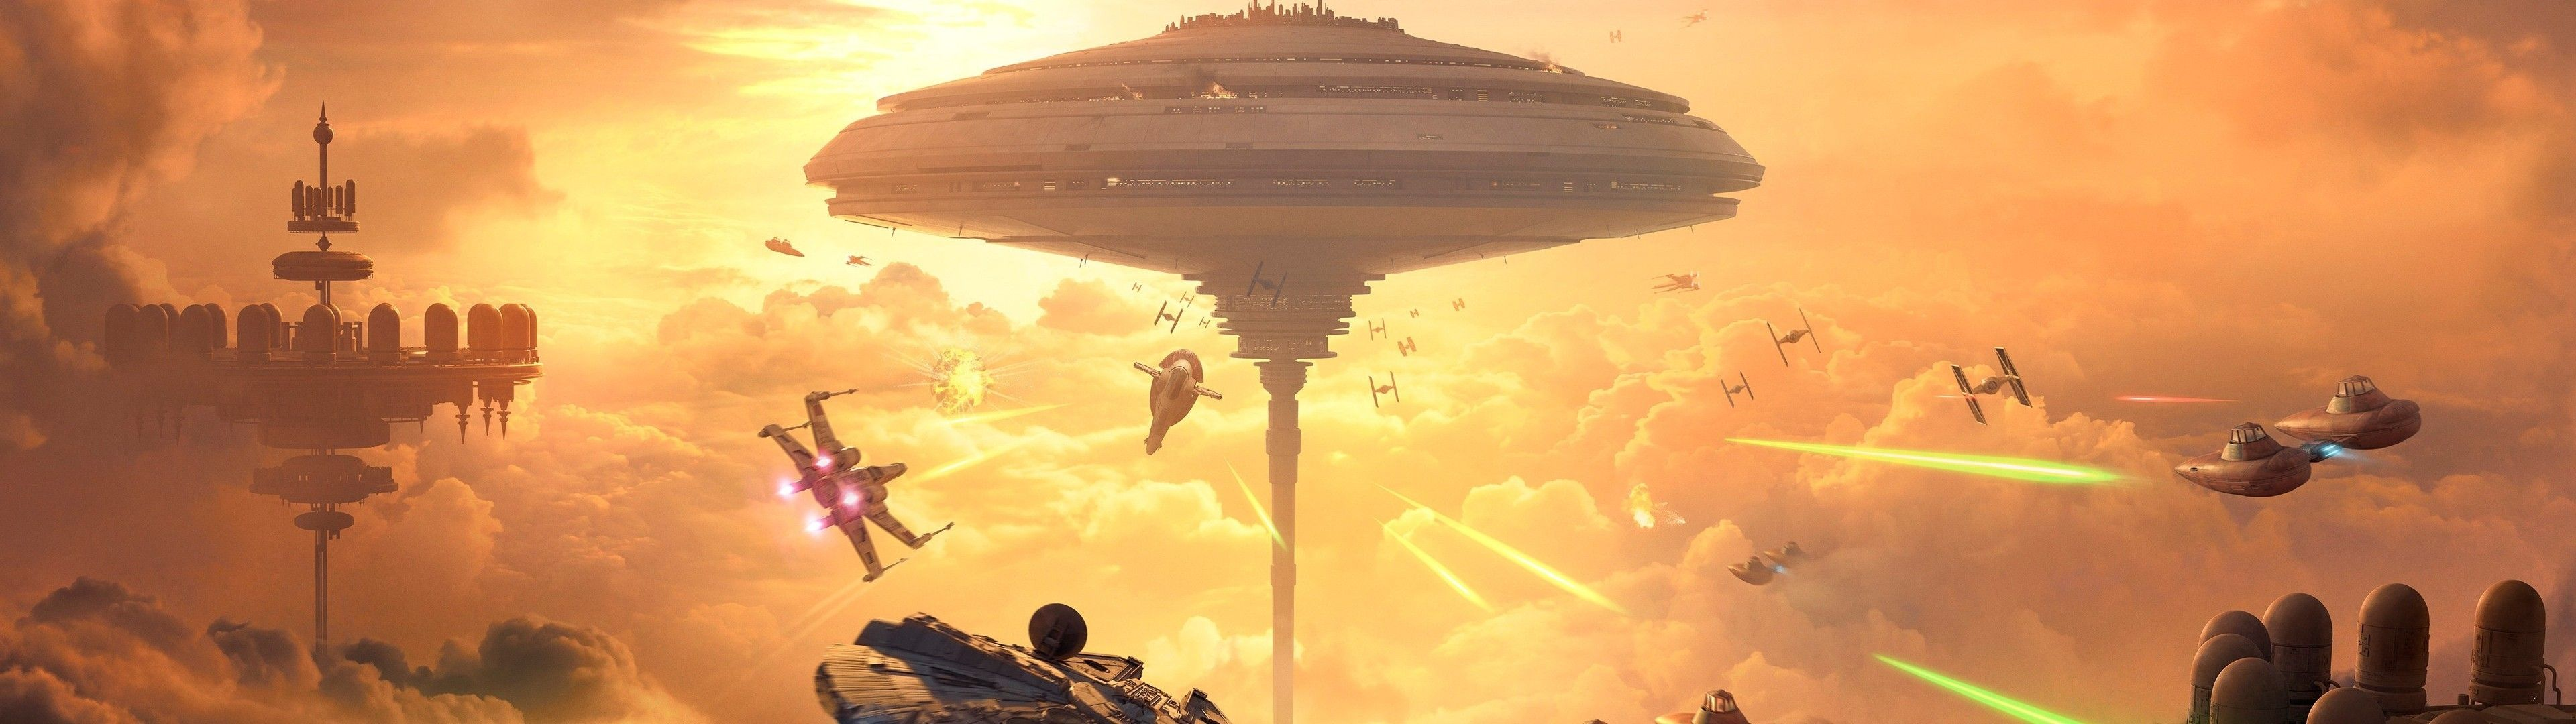 3840x1080 Star Wars Wallpapers Top Free 3840x1080 Star Wars Backgrounds Wallpaperaccess